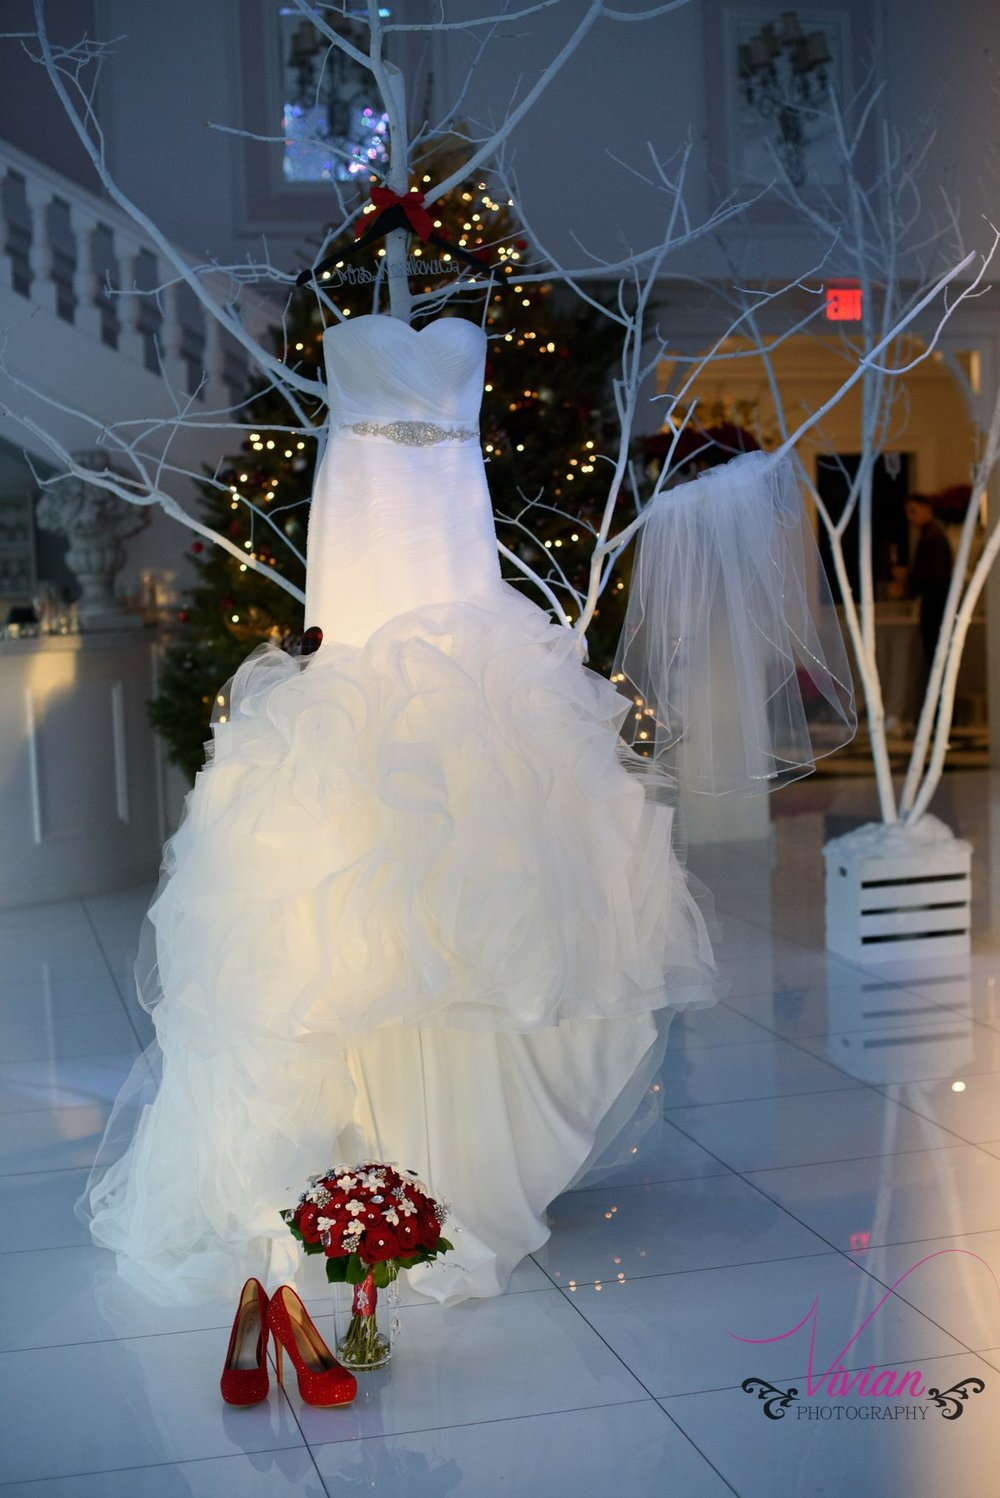 wedding-dress-hanging-from-white-tree-branches-near-red-heels.jpg